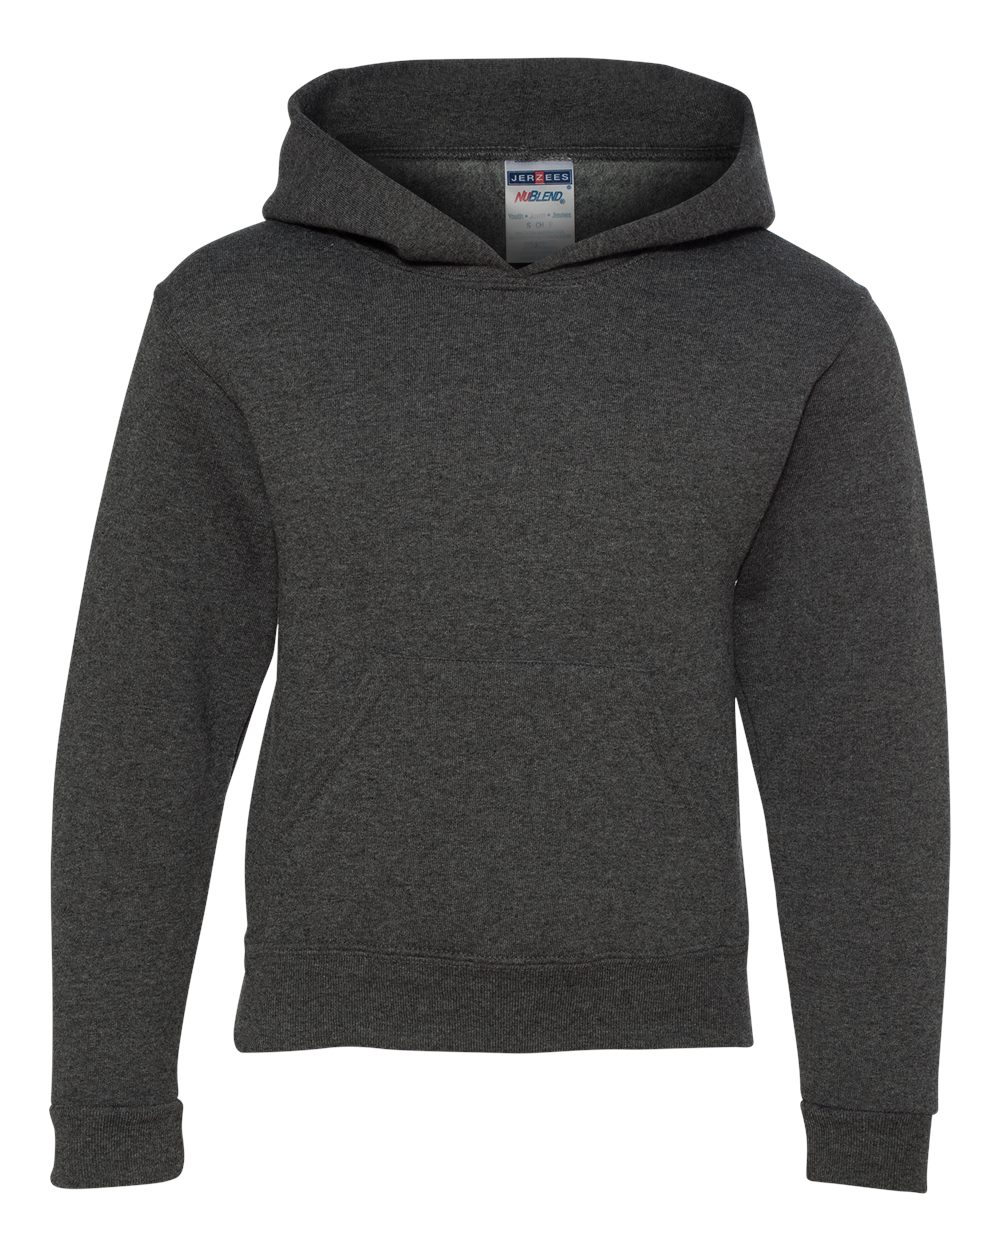 Picture of Jerzees Nublend Youth Pullover Hooded Sweatshirt